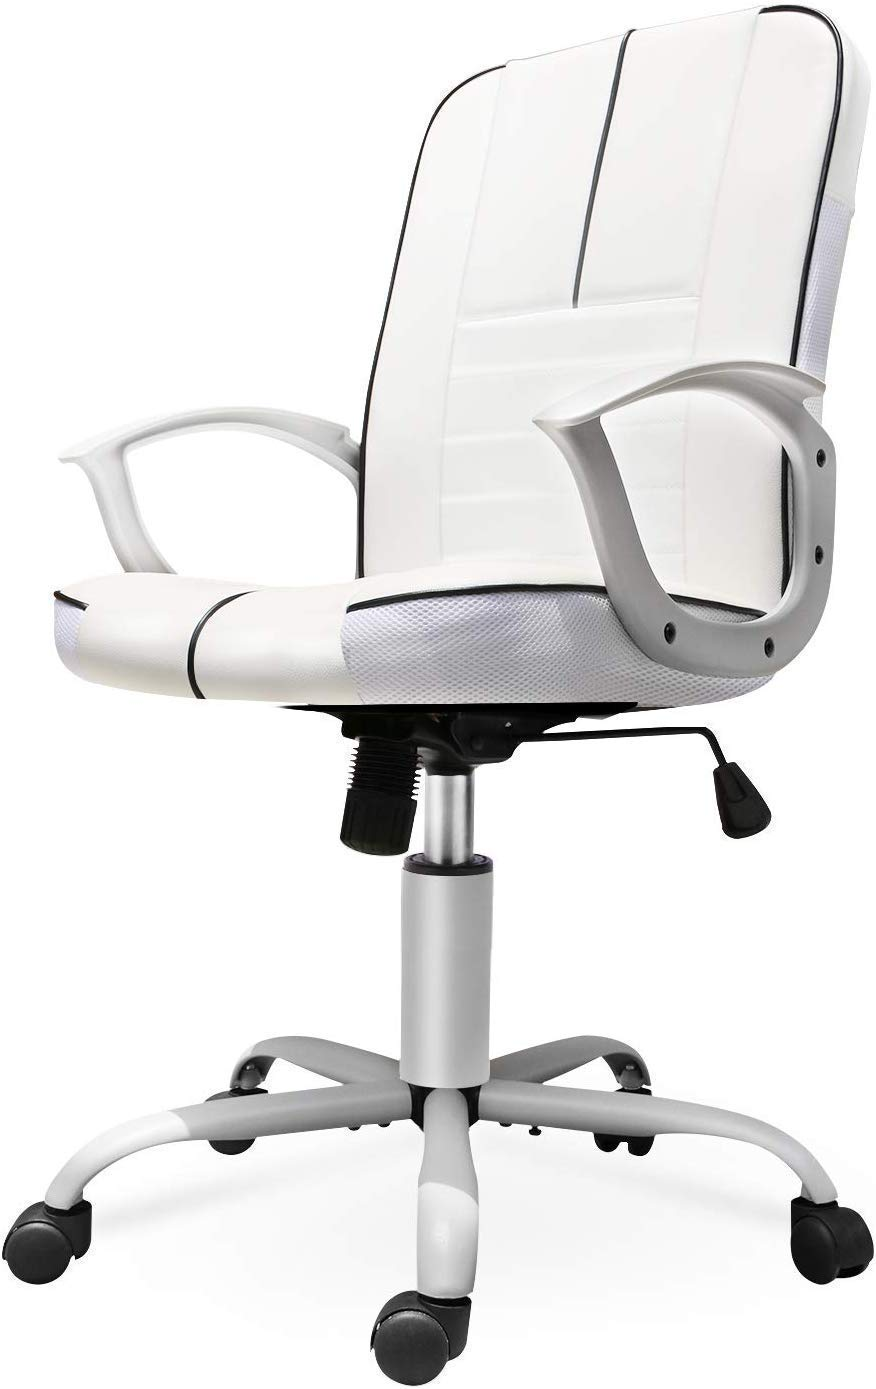 Smugdesk Ergonomic Bonded Leather Office Computer Chair